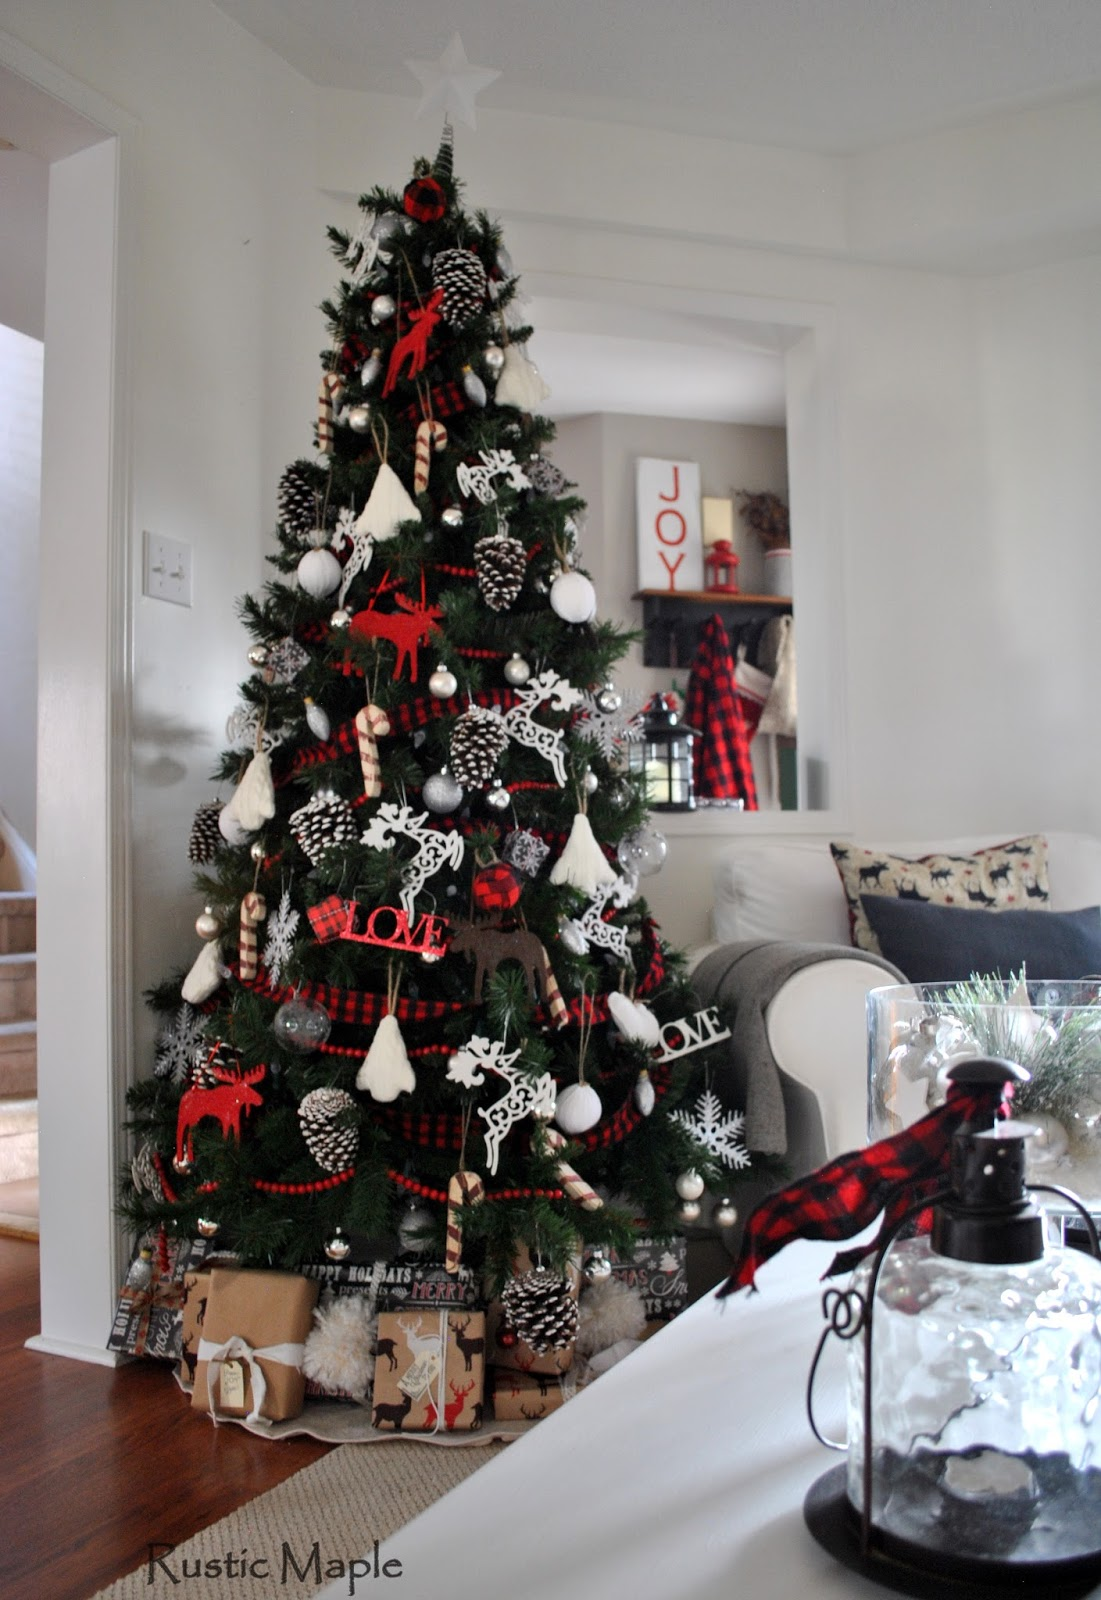 Rustic Maple Our Rustic Christmas Living Room 2015